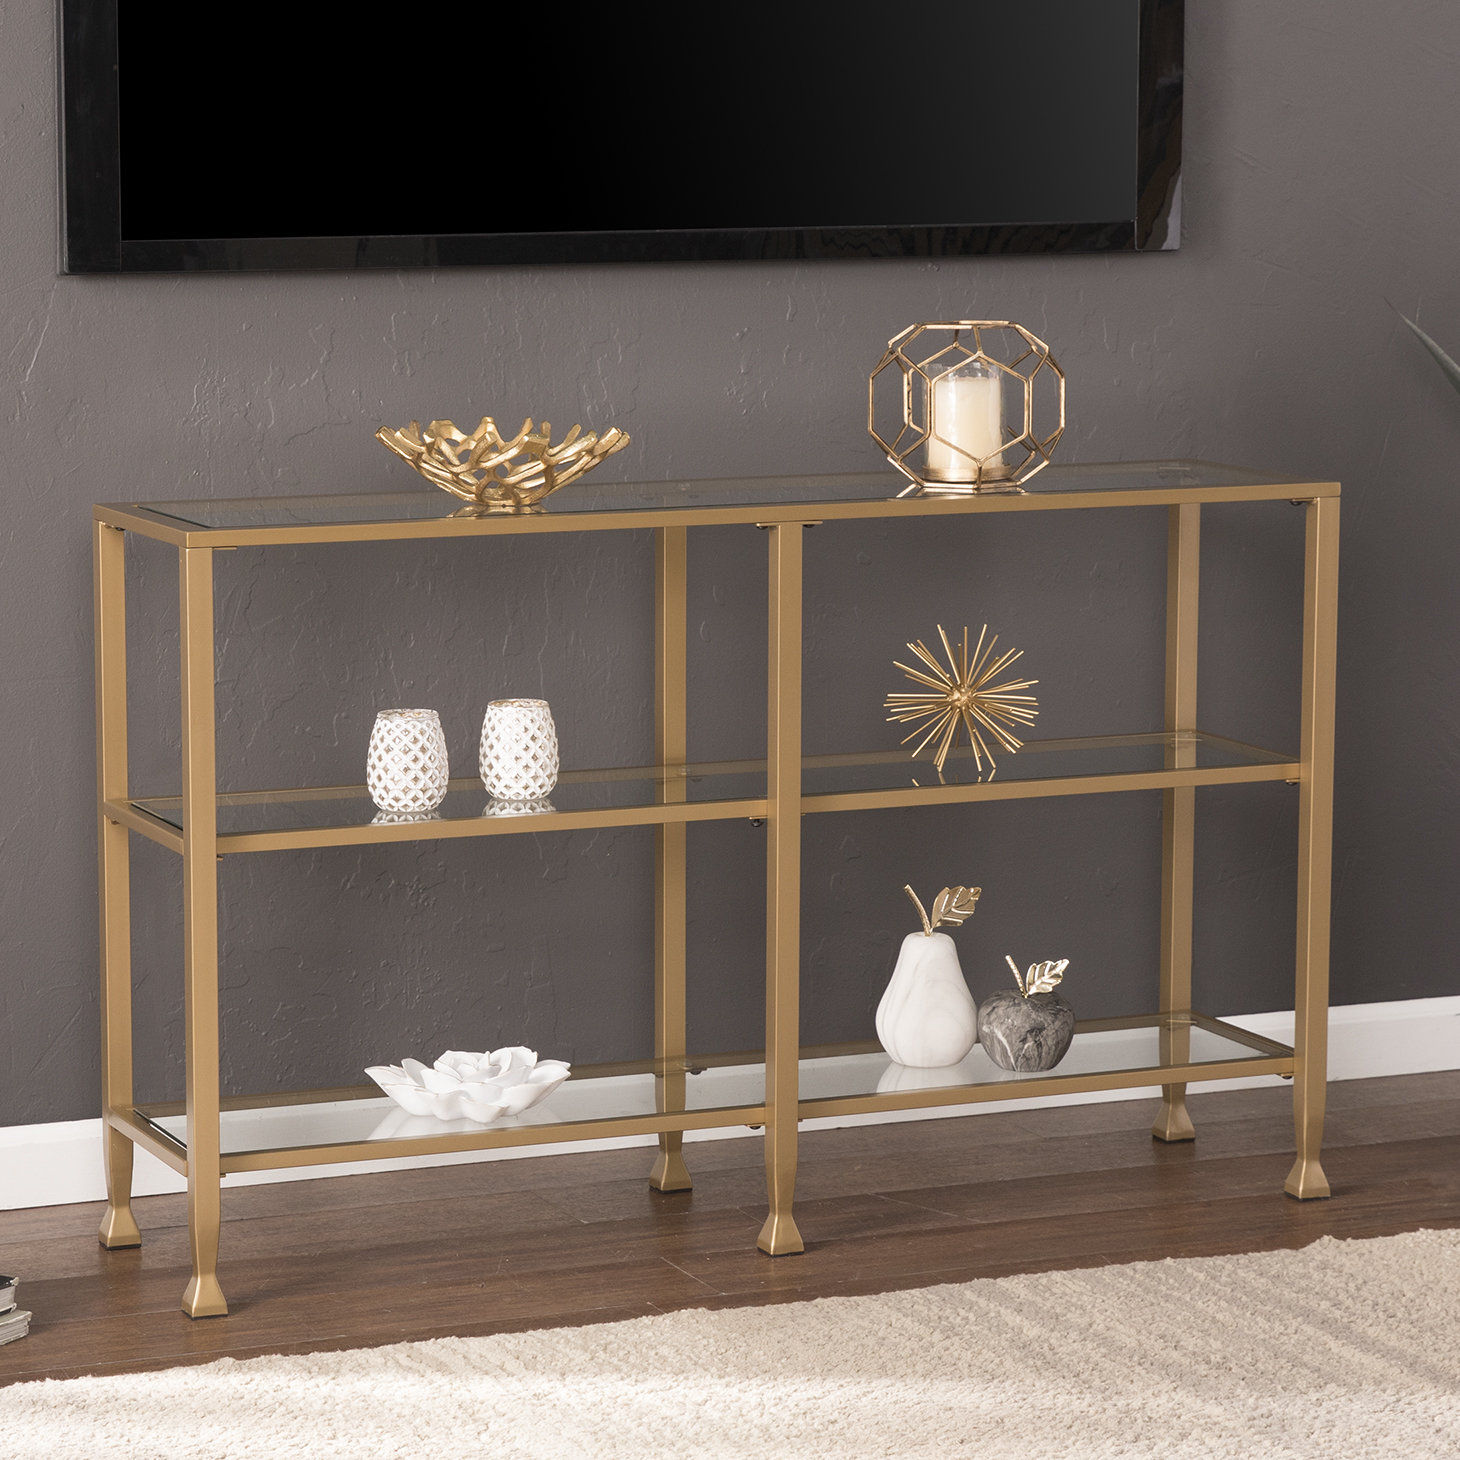 gold leaf console table casas chrome metal glass accent sofa with shelf quickview small living room decorating ideas battery operated lights remote floral lamp diy coffee pottery